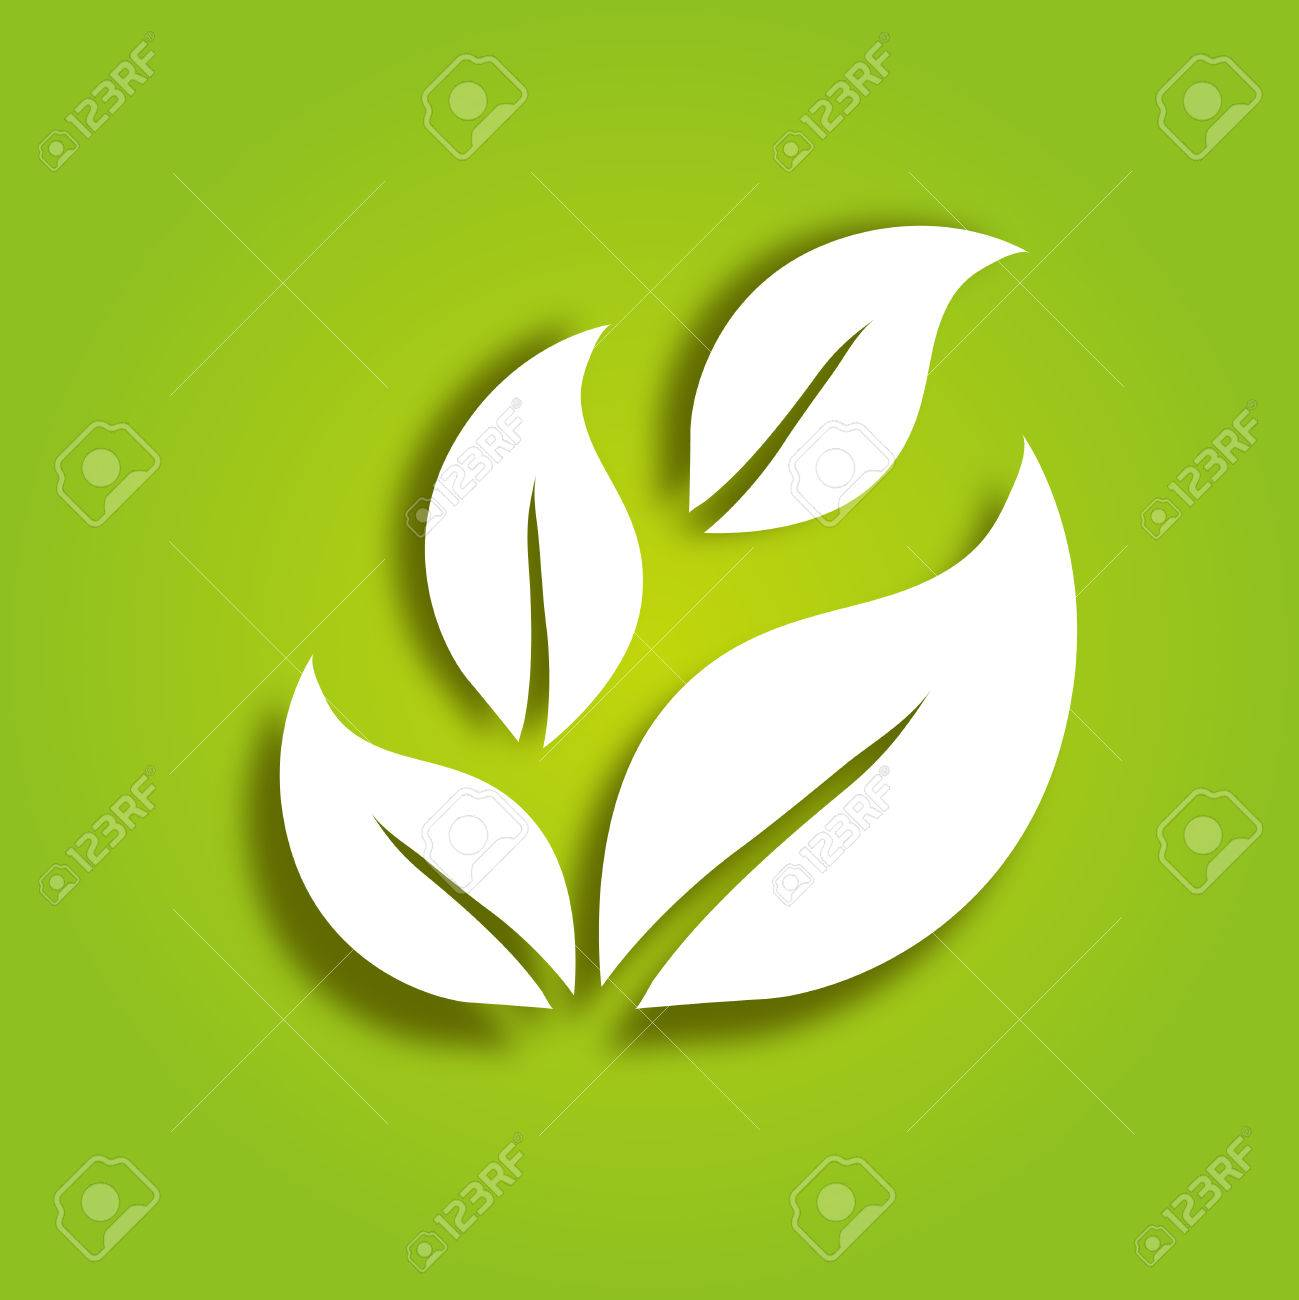 Eco paper leaves symbol of nature royalty free cliparts vectors eco paper leaves symbol of nature stock vector 23650487 biocorpaavc Gallery